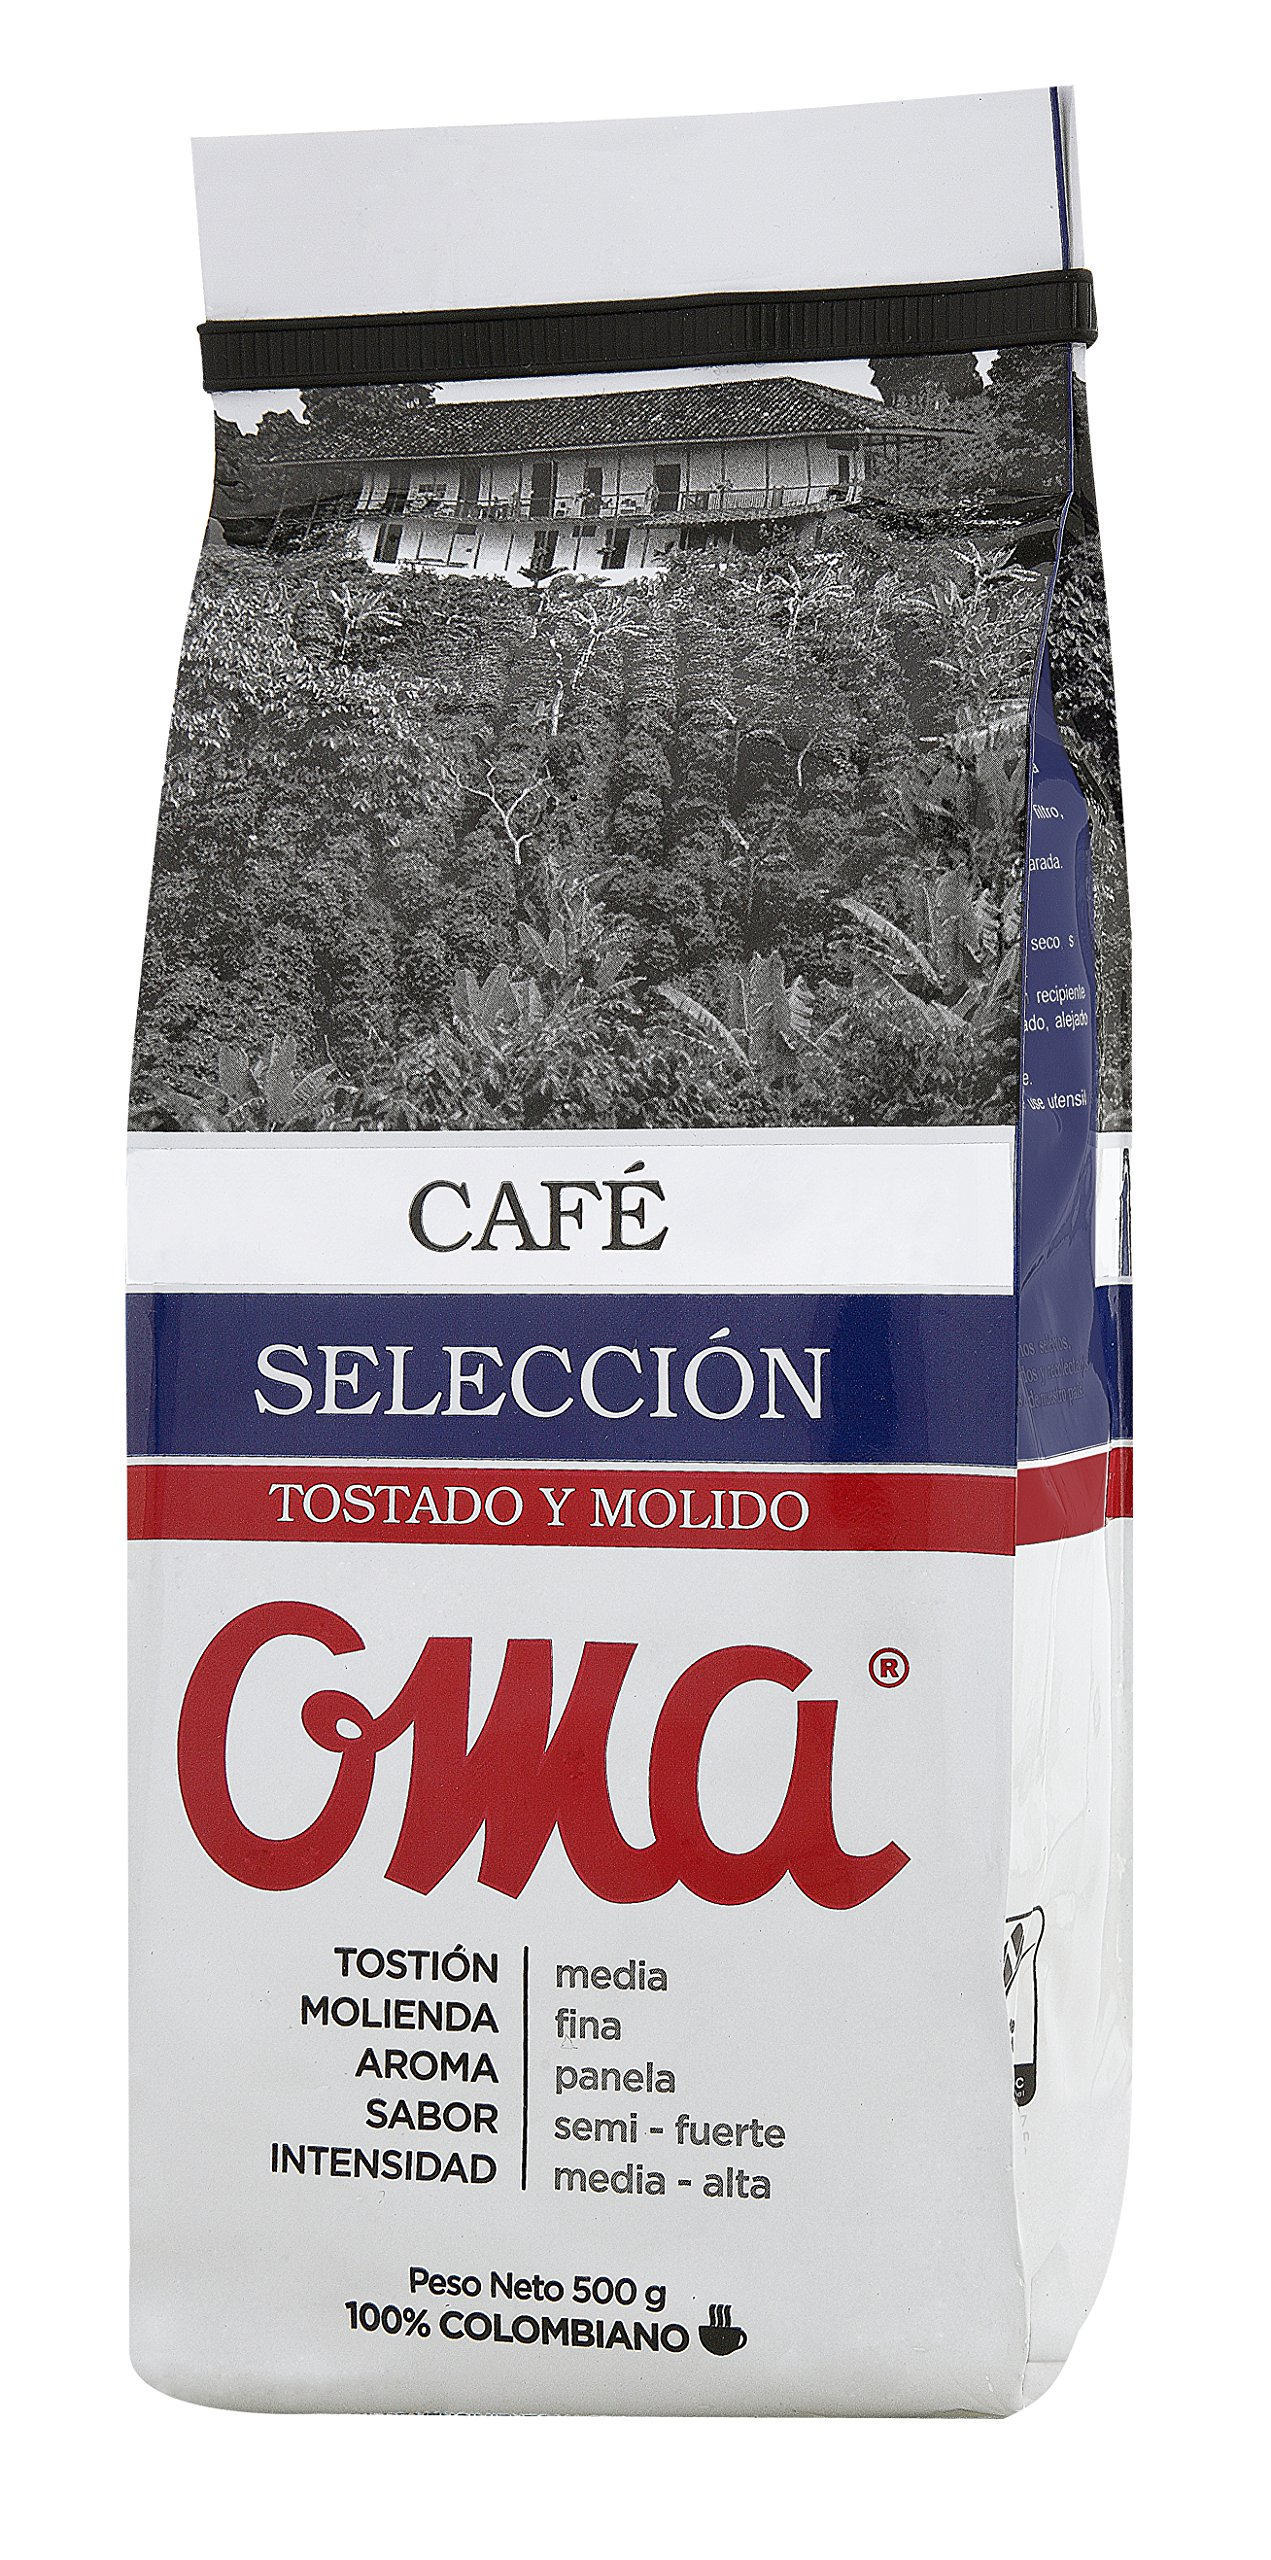 OMA Roast and Ground Coffee Special Selection 100% Colombian Coffee/Cafe OMA Tostado y Molido